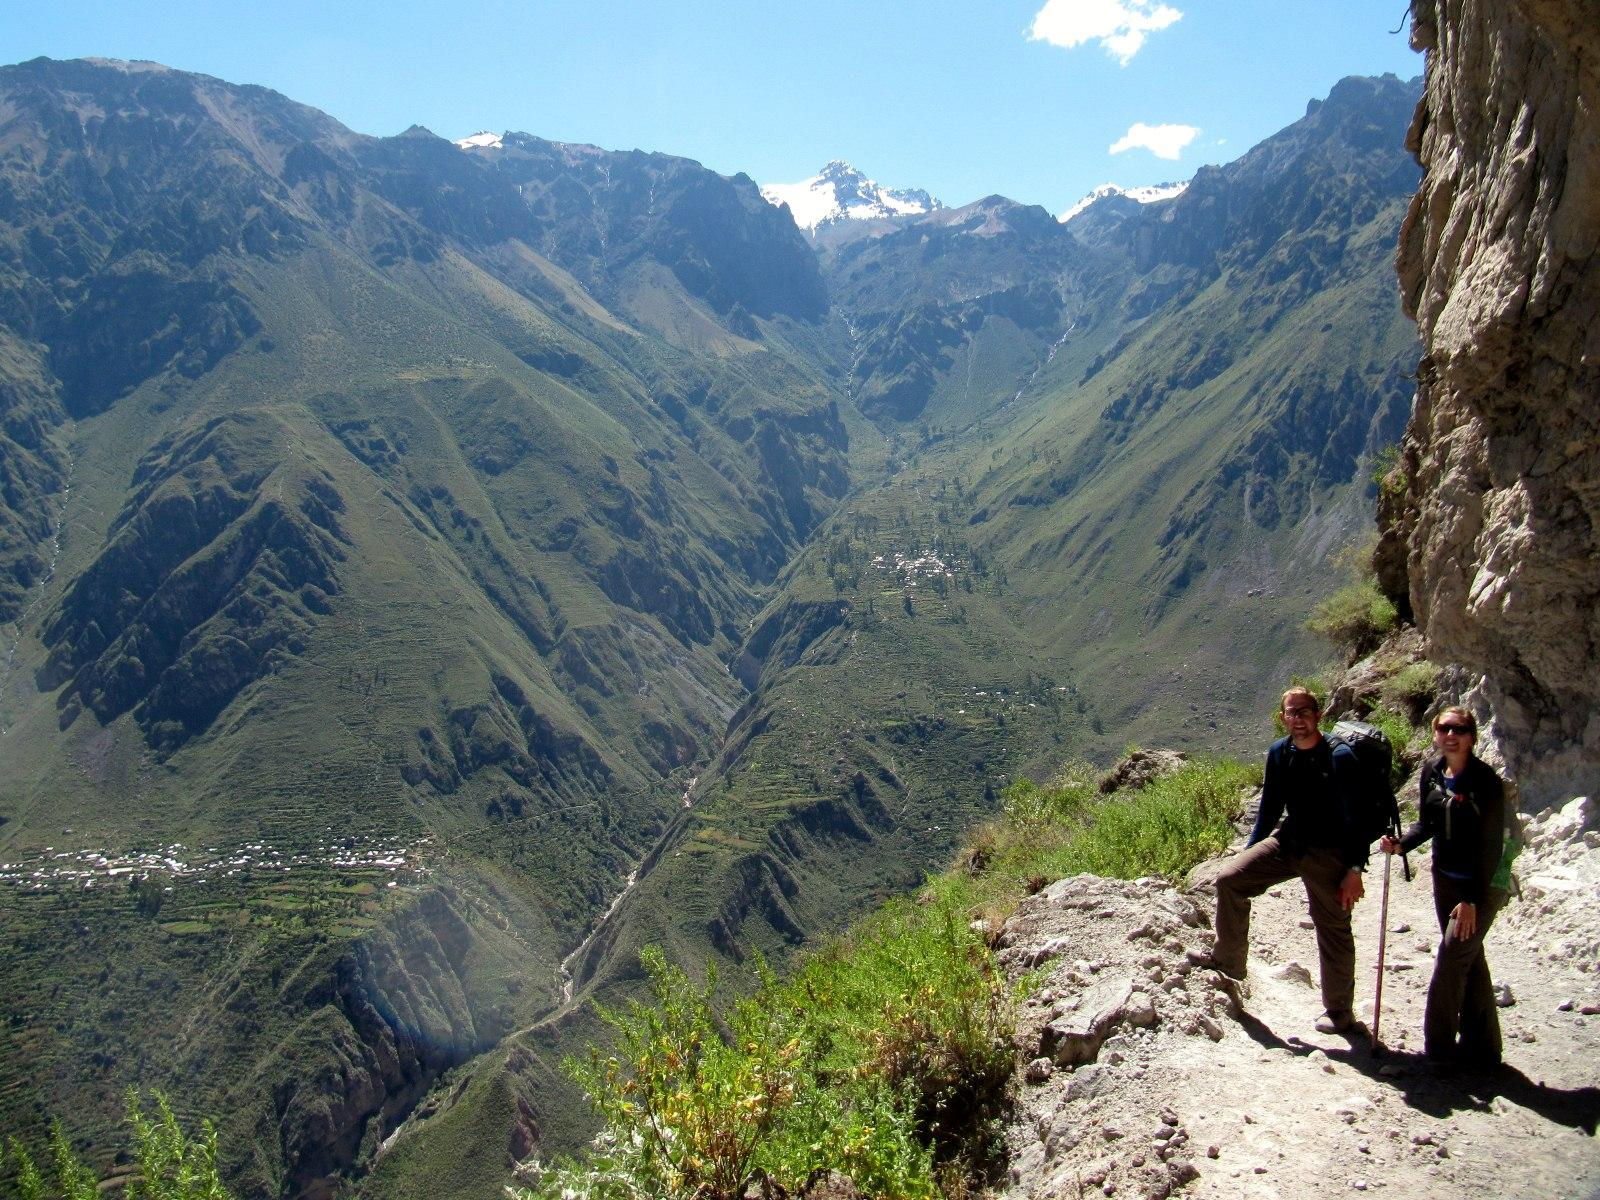 Climbing In and Out of Colca Canyon